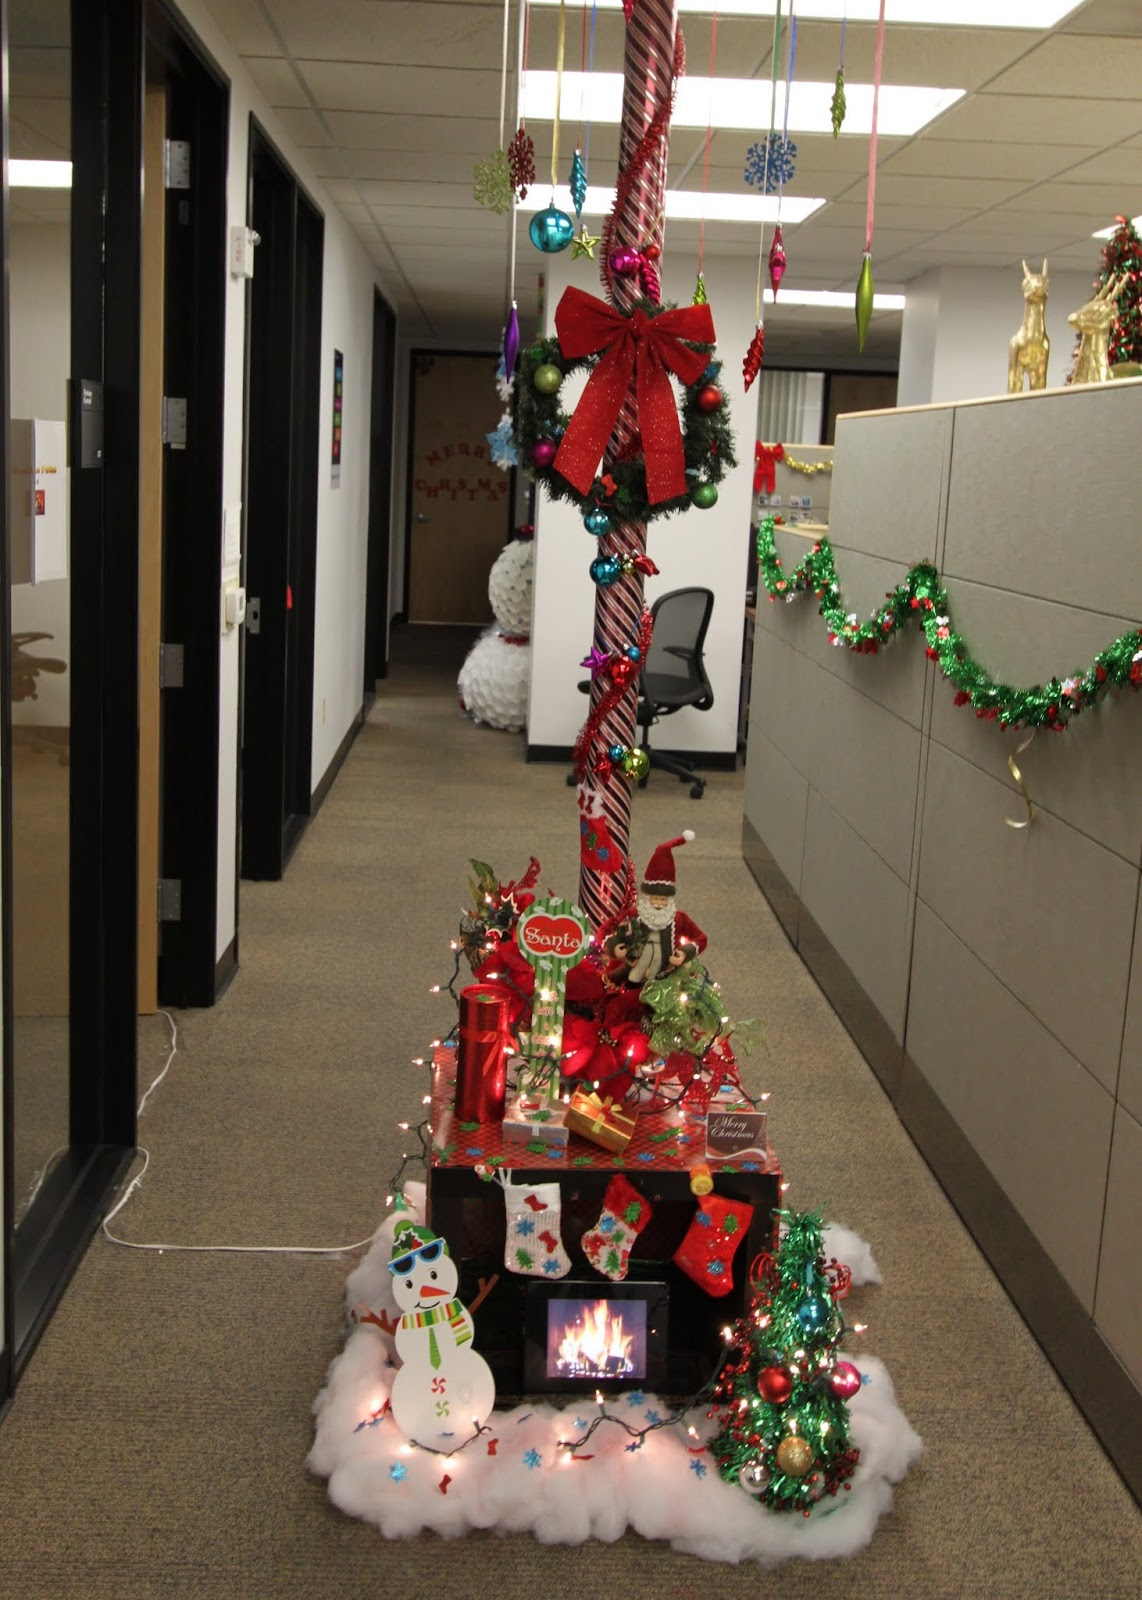 office holiday decorating ideas. Office Holiday Decor. Christmas Pole Decorating Contest Decor I Ideas M